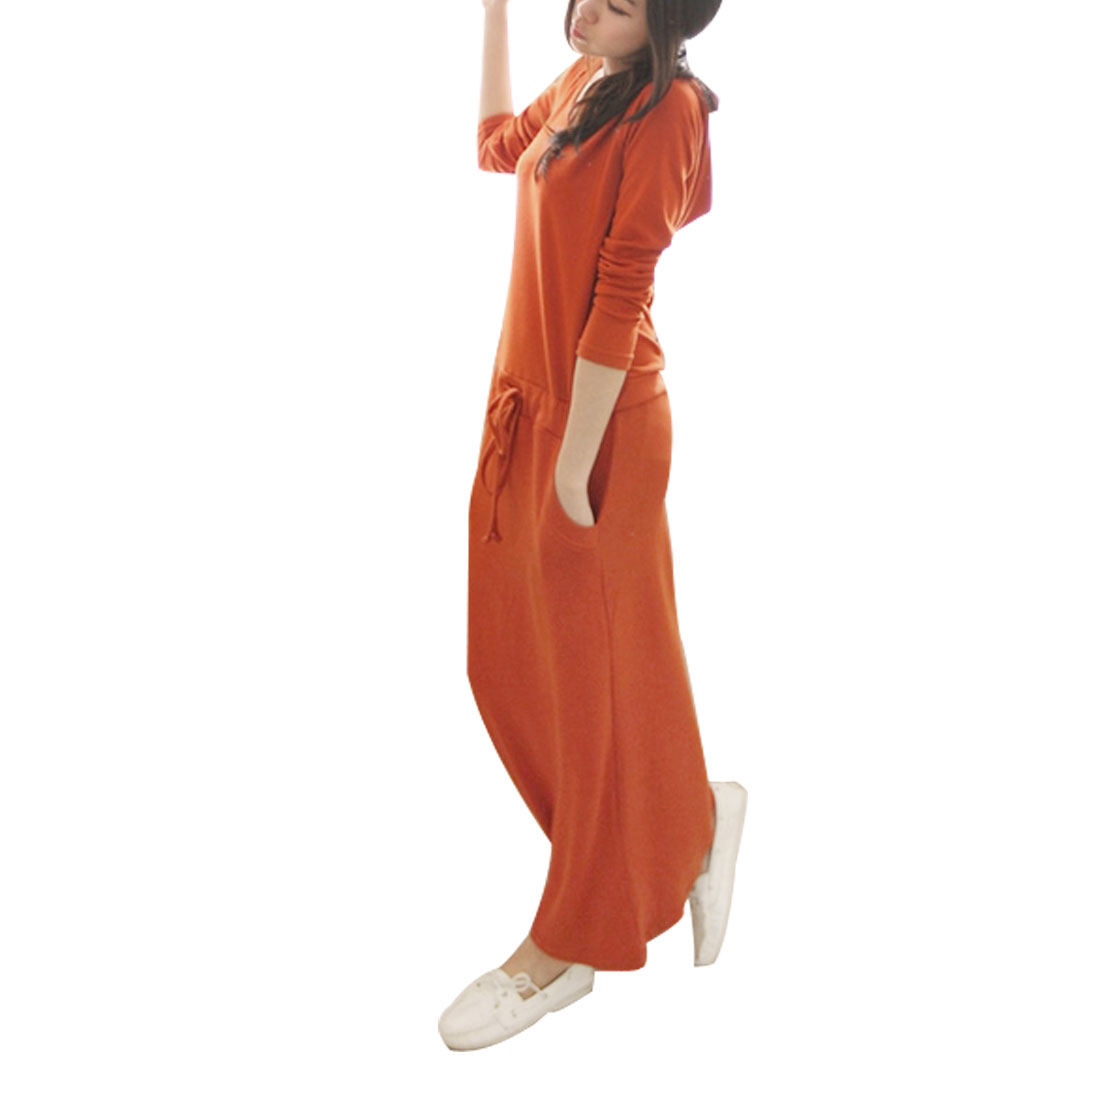 Ladies Orange Long Sleeves Drawstring Waist Casual Hooded Long Dress XS